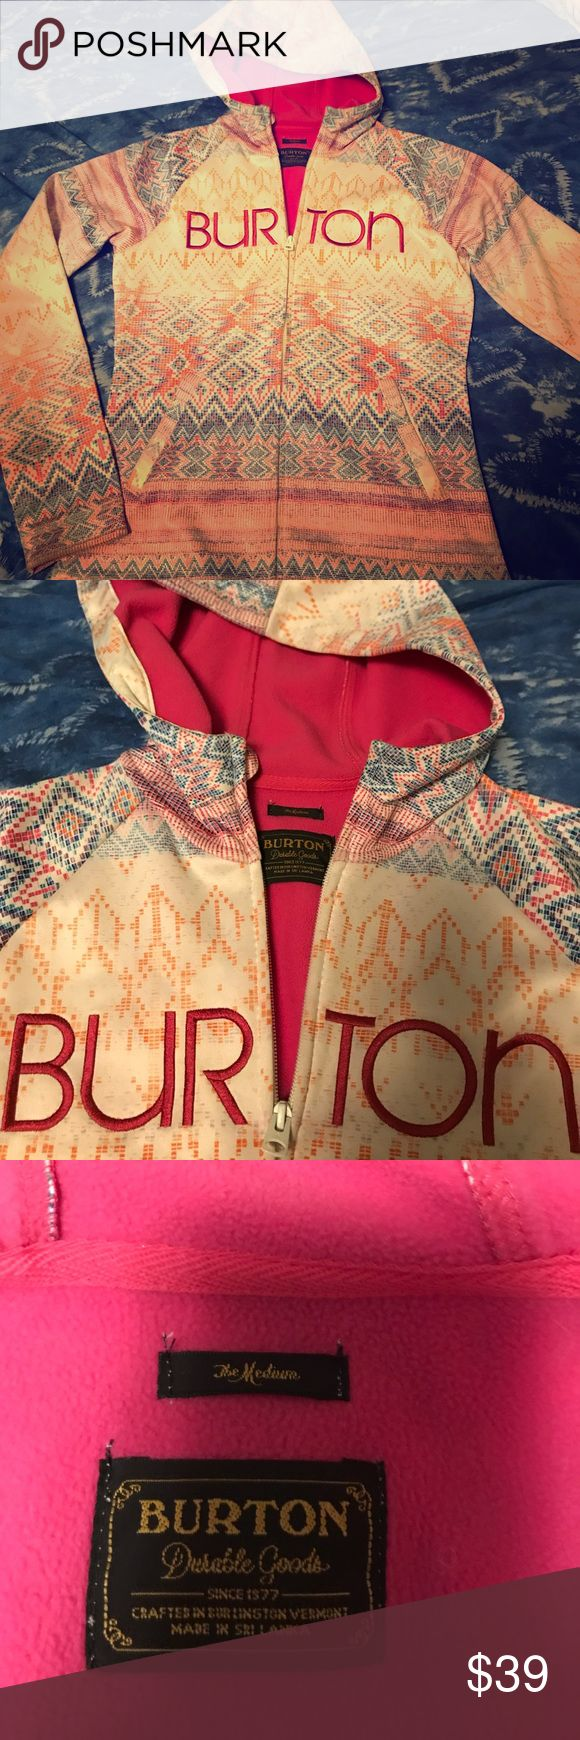 Burton jacket size medium The is a used Burton jacket, size medium.  It is has a multi color print with a dark pink fleece lining.  This is a used hoodie, size medium, runs small.  Perfect for fall. Burton Jackets & Coats